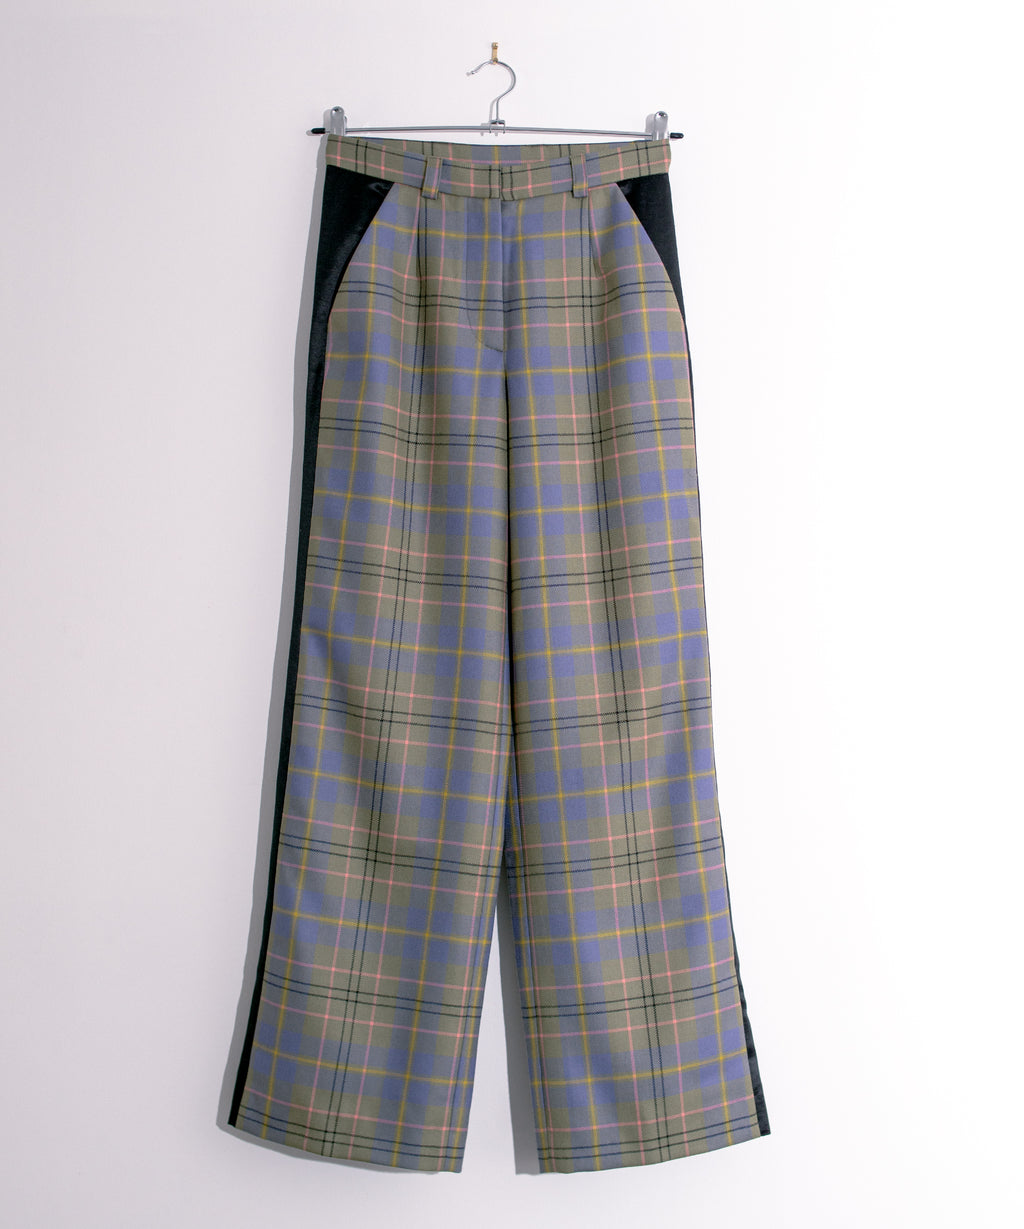 Plaid Trousers with Contrasting Black Side Panel